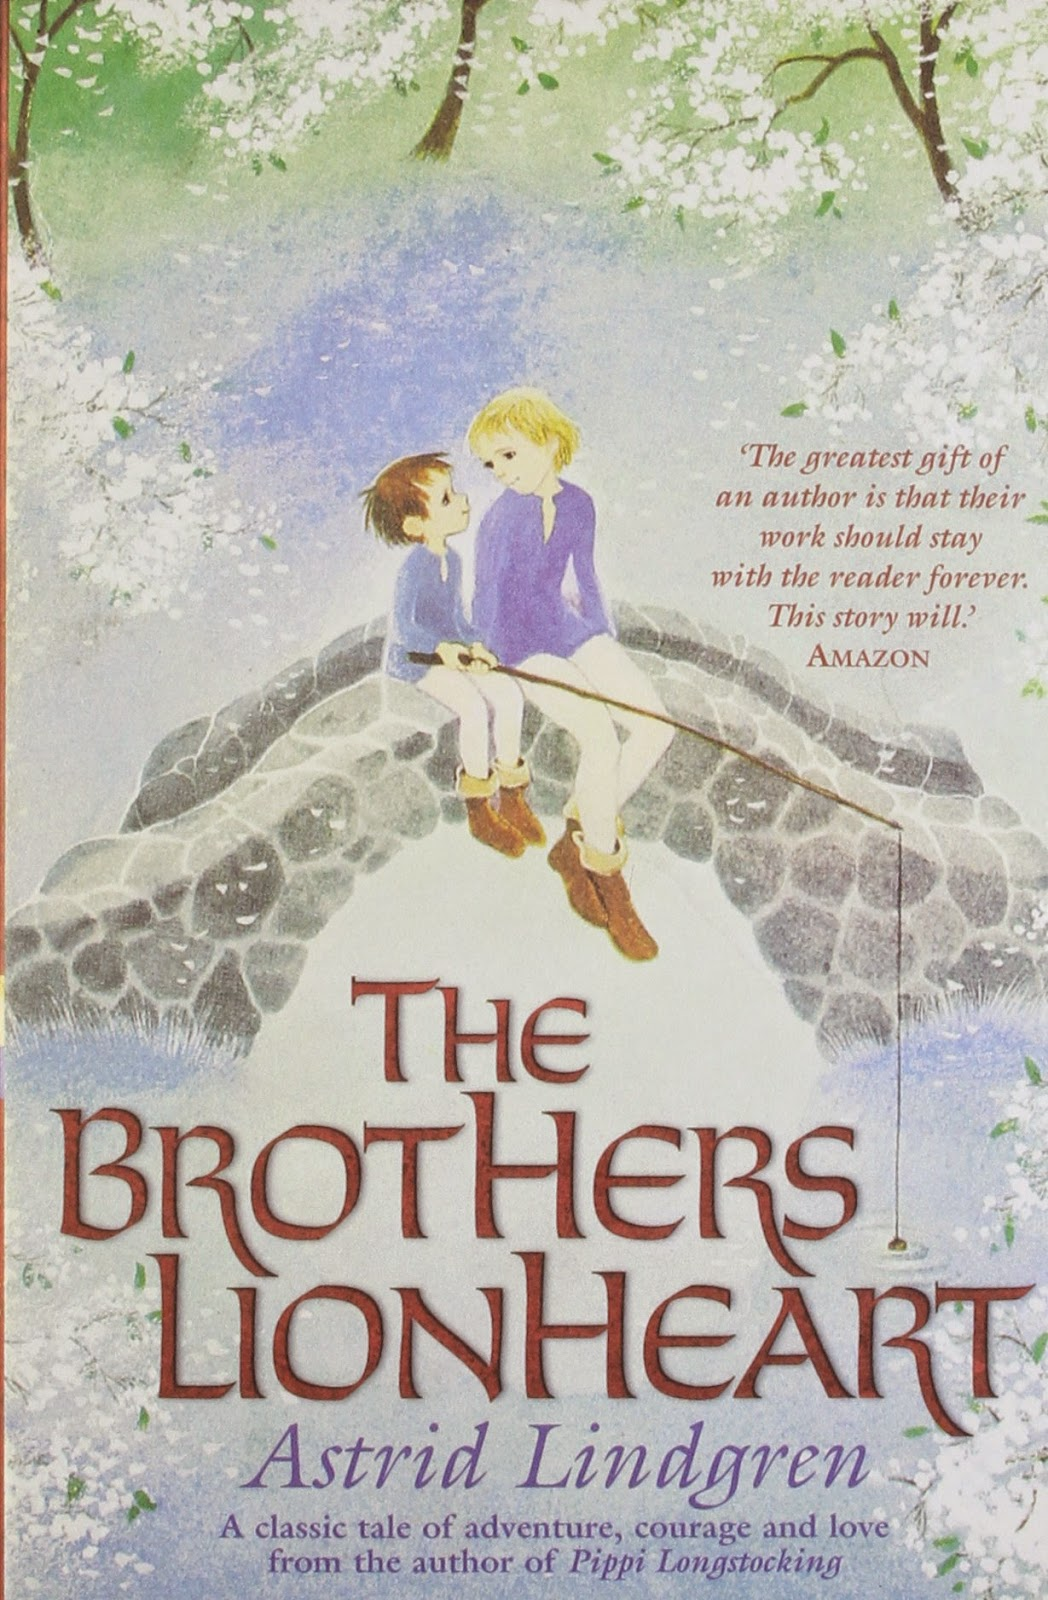 cover of the paperback book The Brothers Lionheart